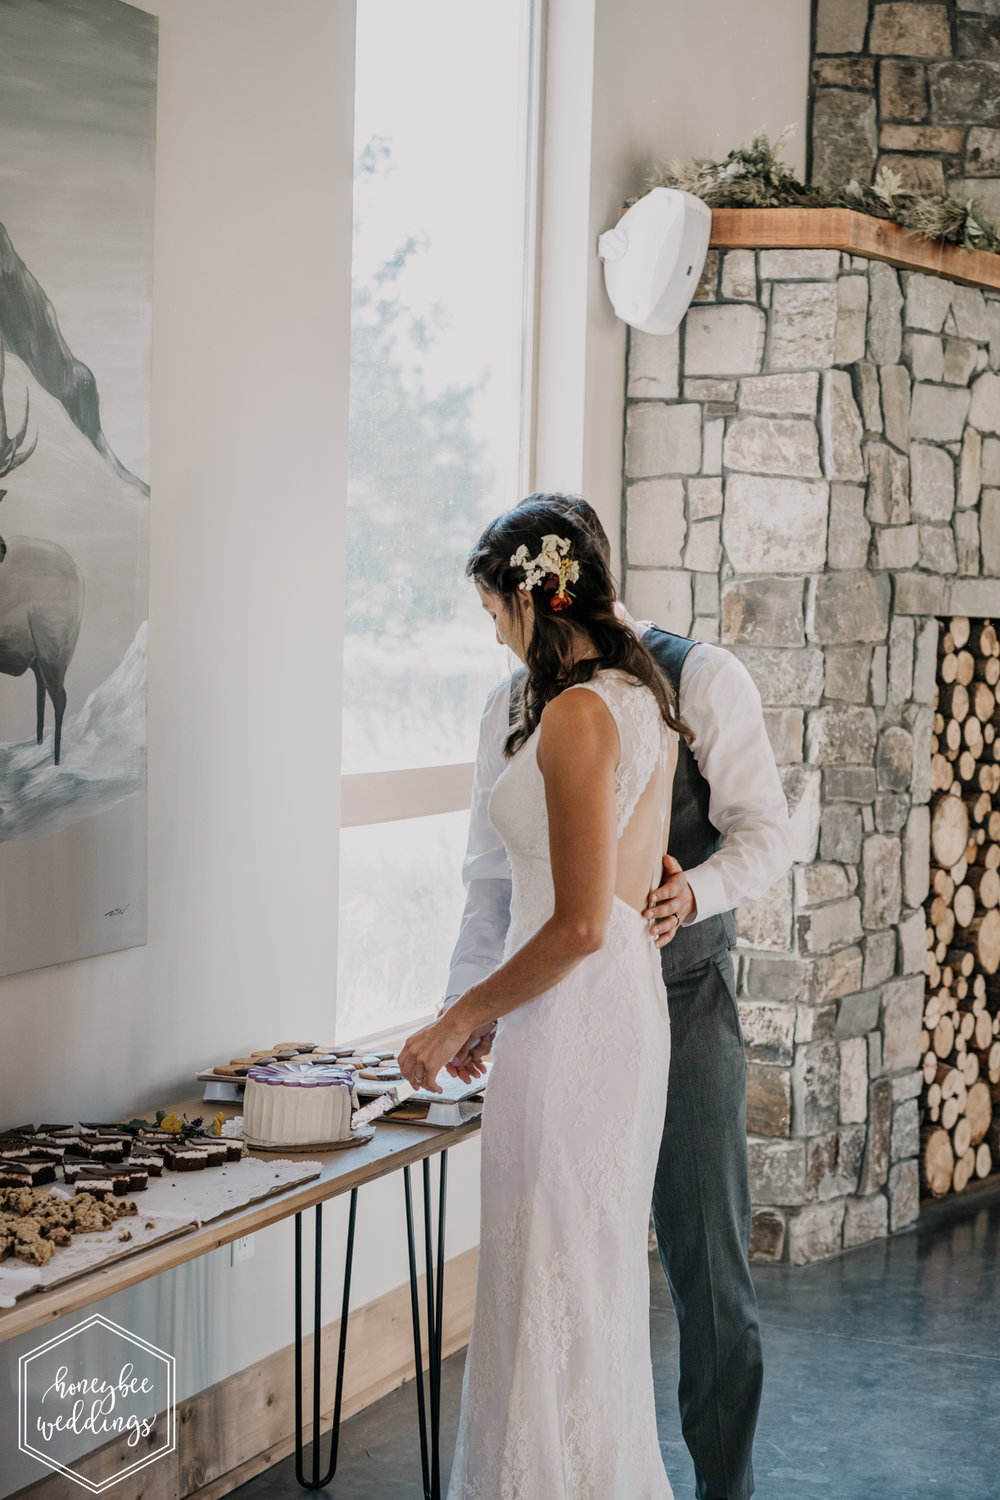 468 White Raven Wedding_Montana Wedding Photographer_Honeybee Weddings_ Meghan Maloney + Arza Hammond 2018-00245.jpg